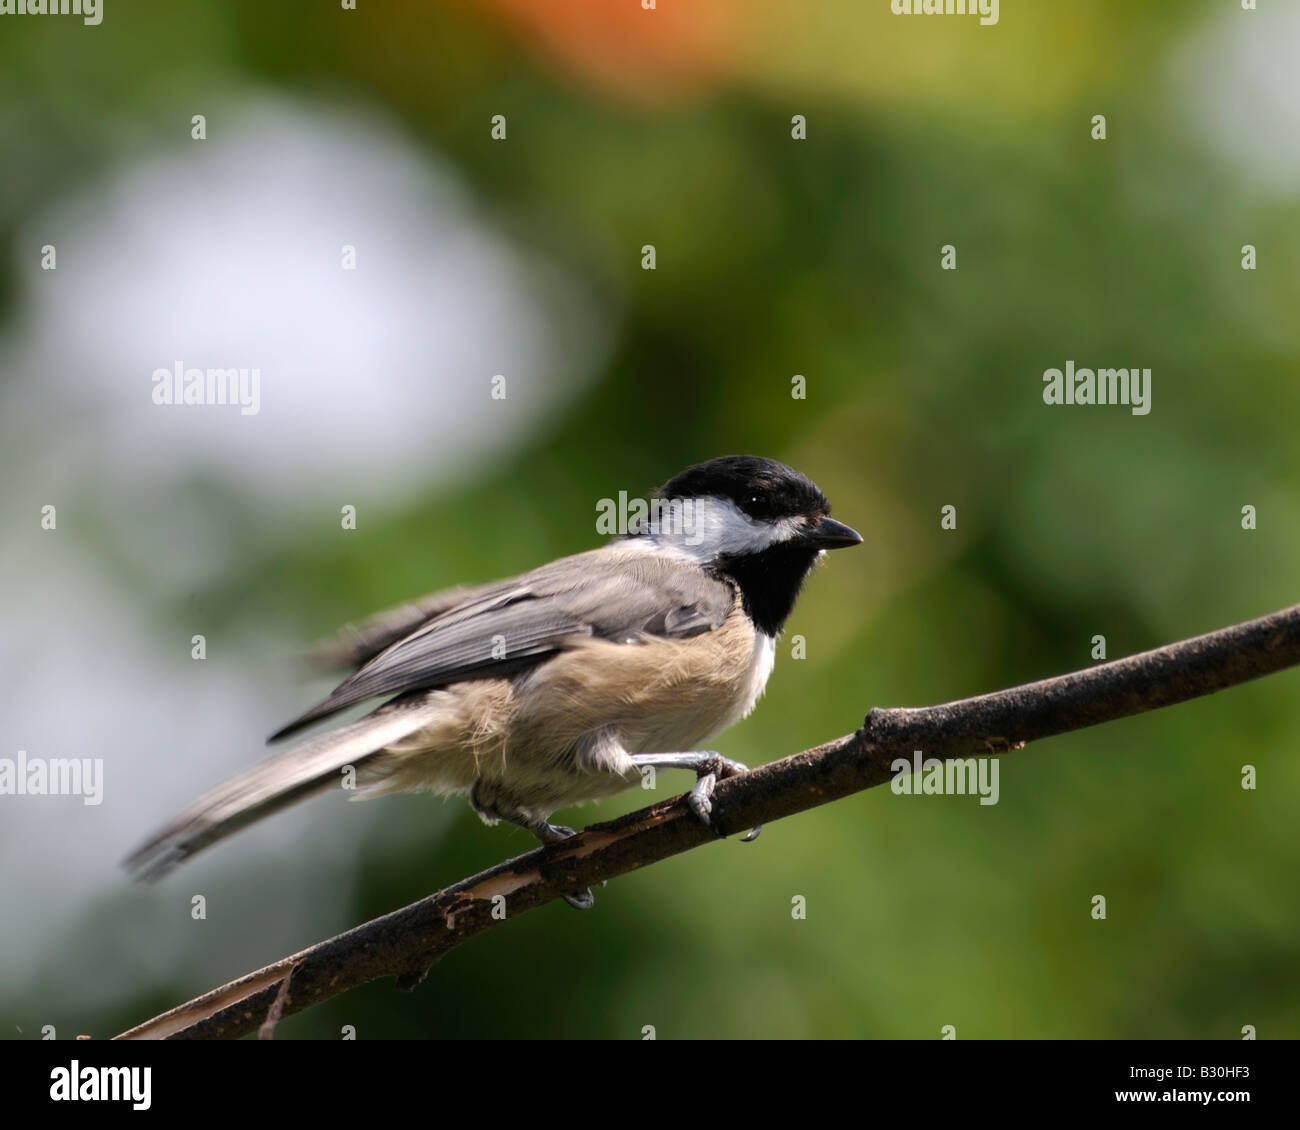 A Black capped Chickadee, Poecile atricapilla, perches on a small branch. Oklahoma, USA. - Stock Image